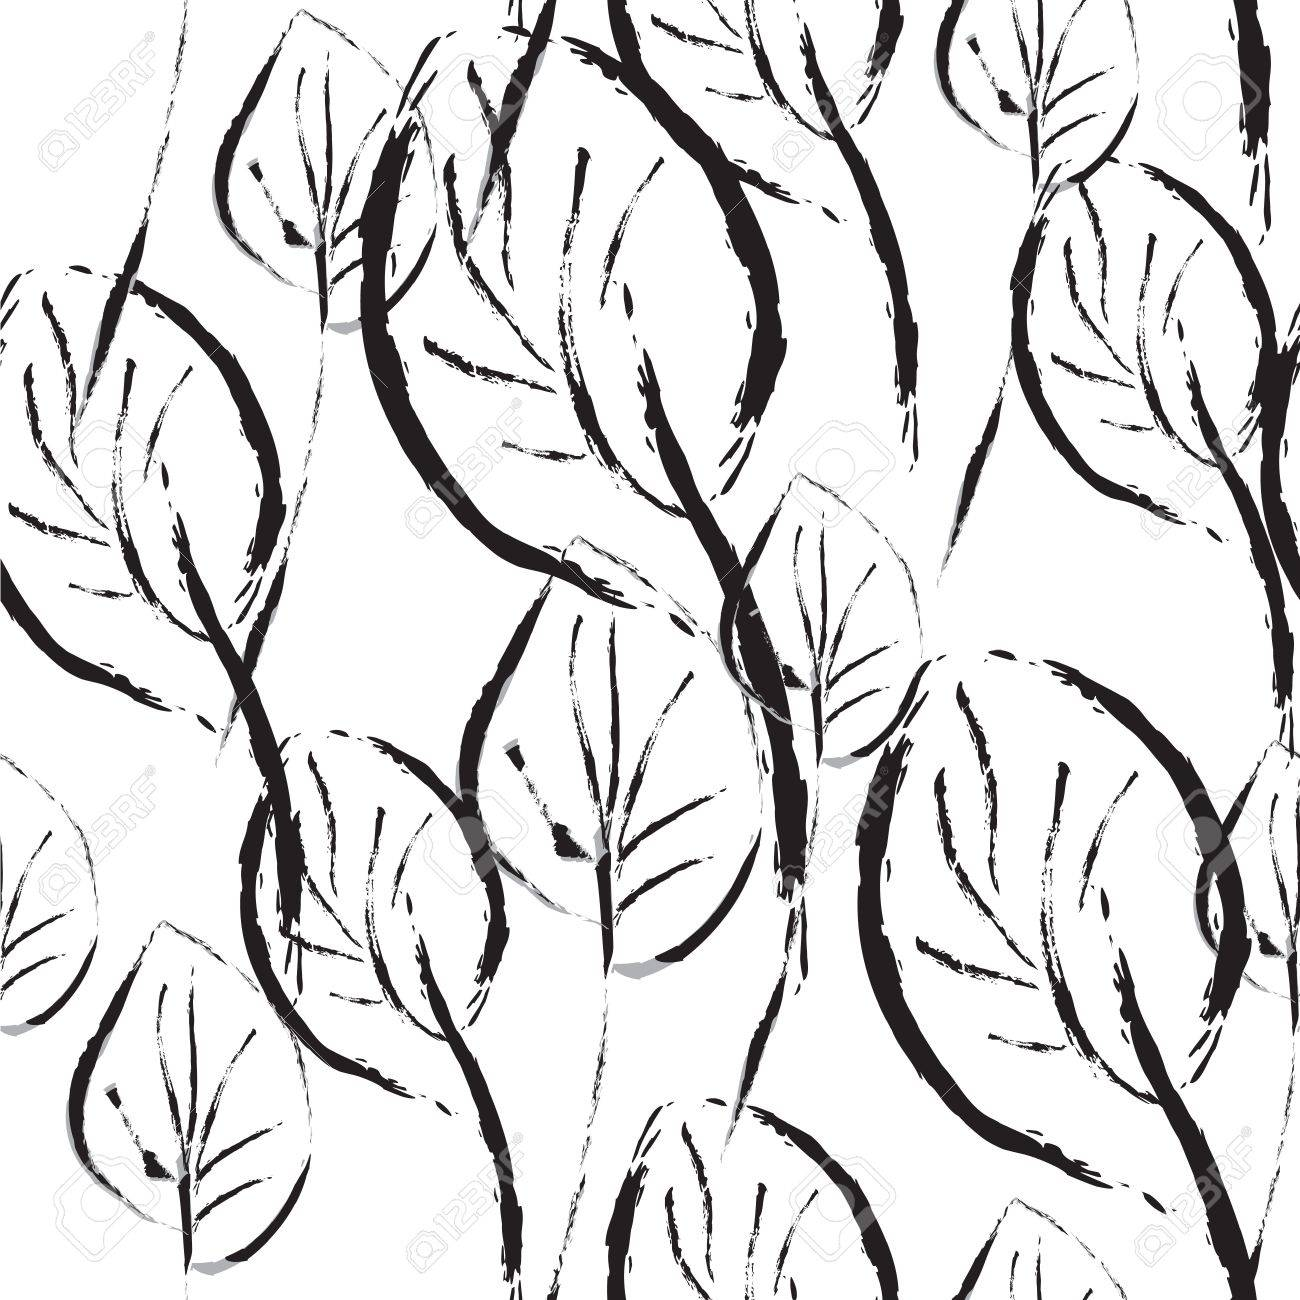 Black and white leaves seamless pattern graphic - 15158993